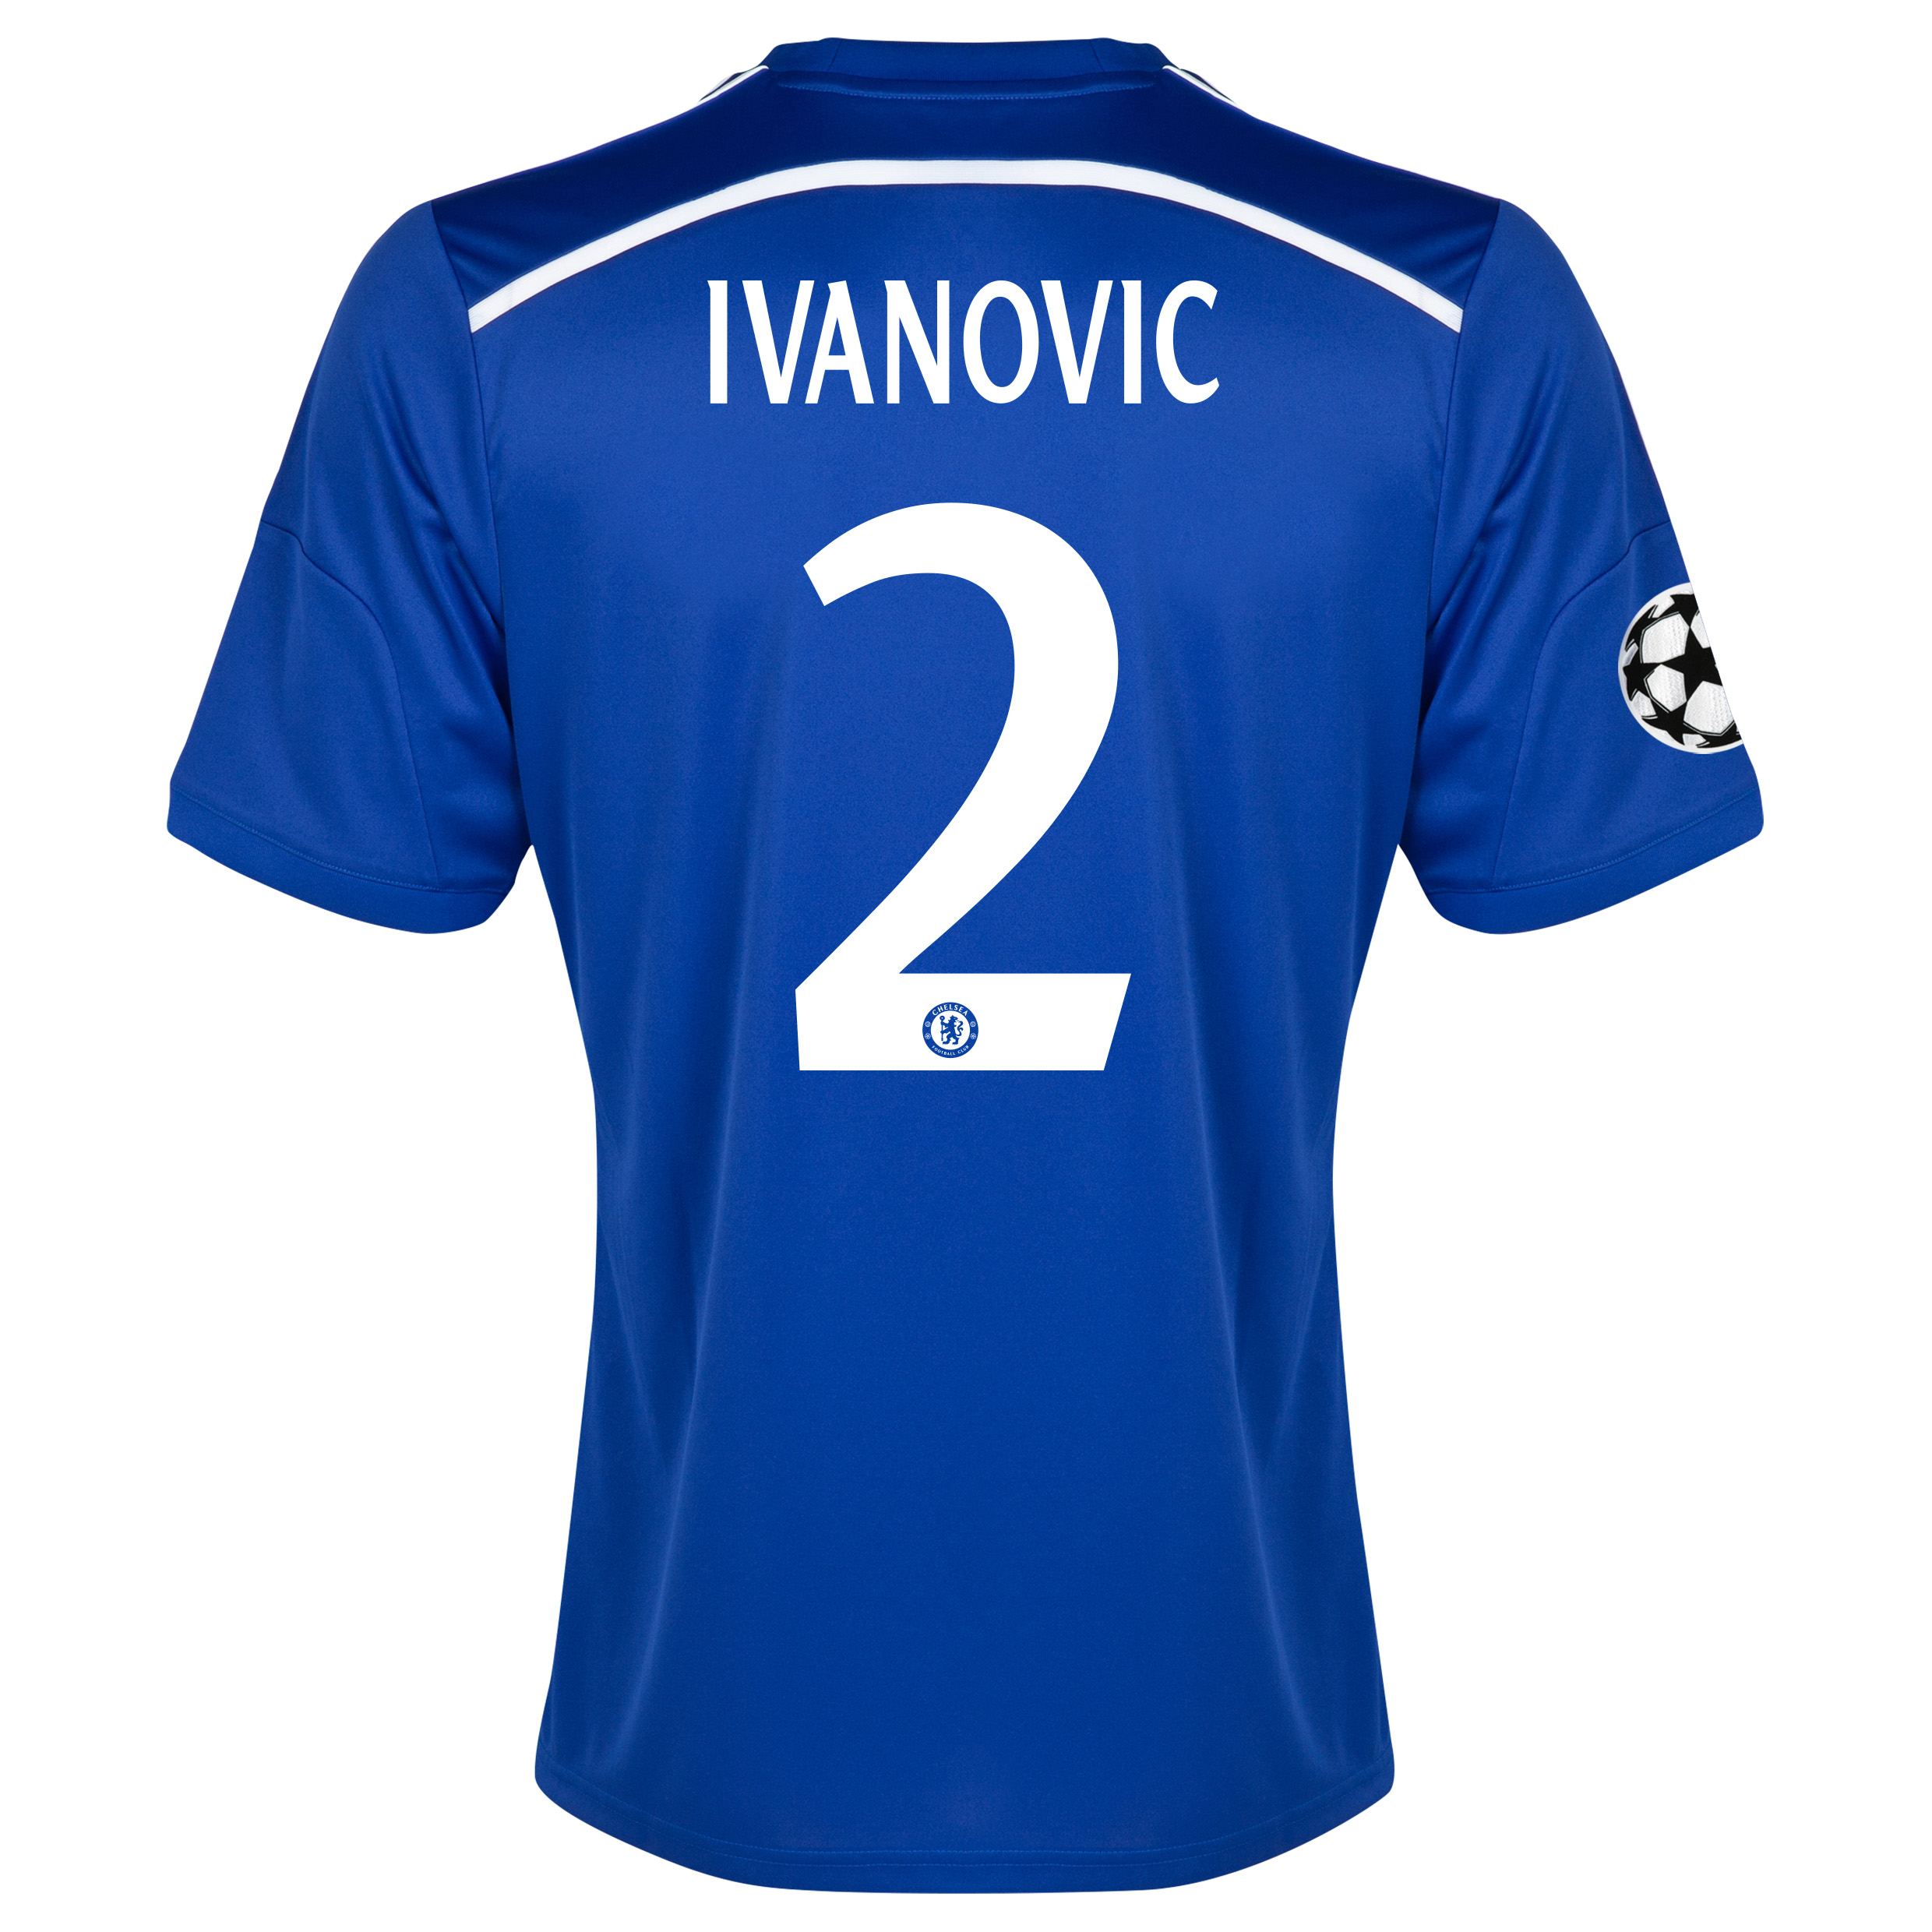 Chelsea UEFA Champions League Home Shirt 2014/15 - Kids Blue with Ivanovic 2 printing